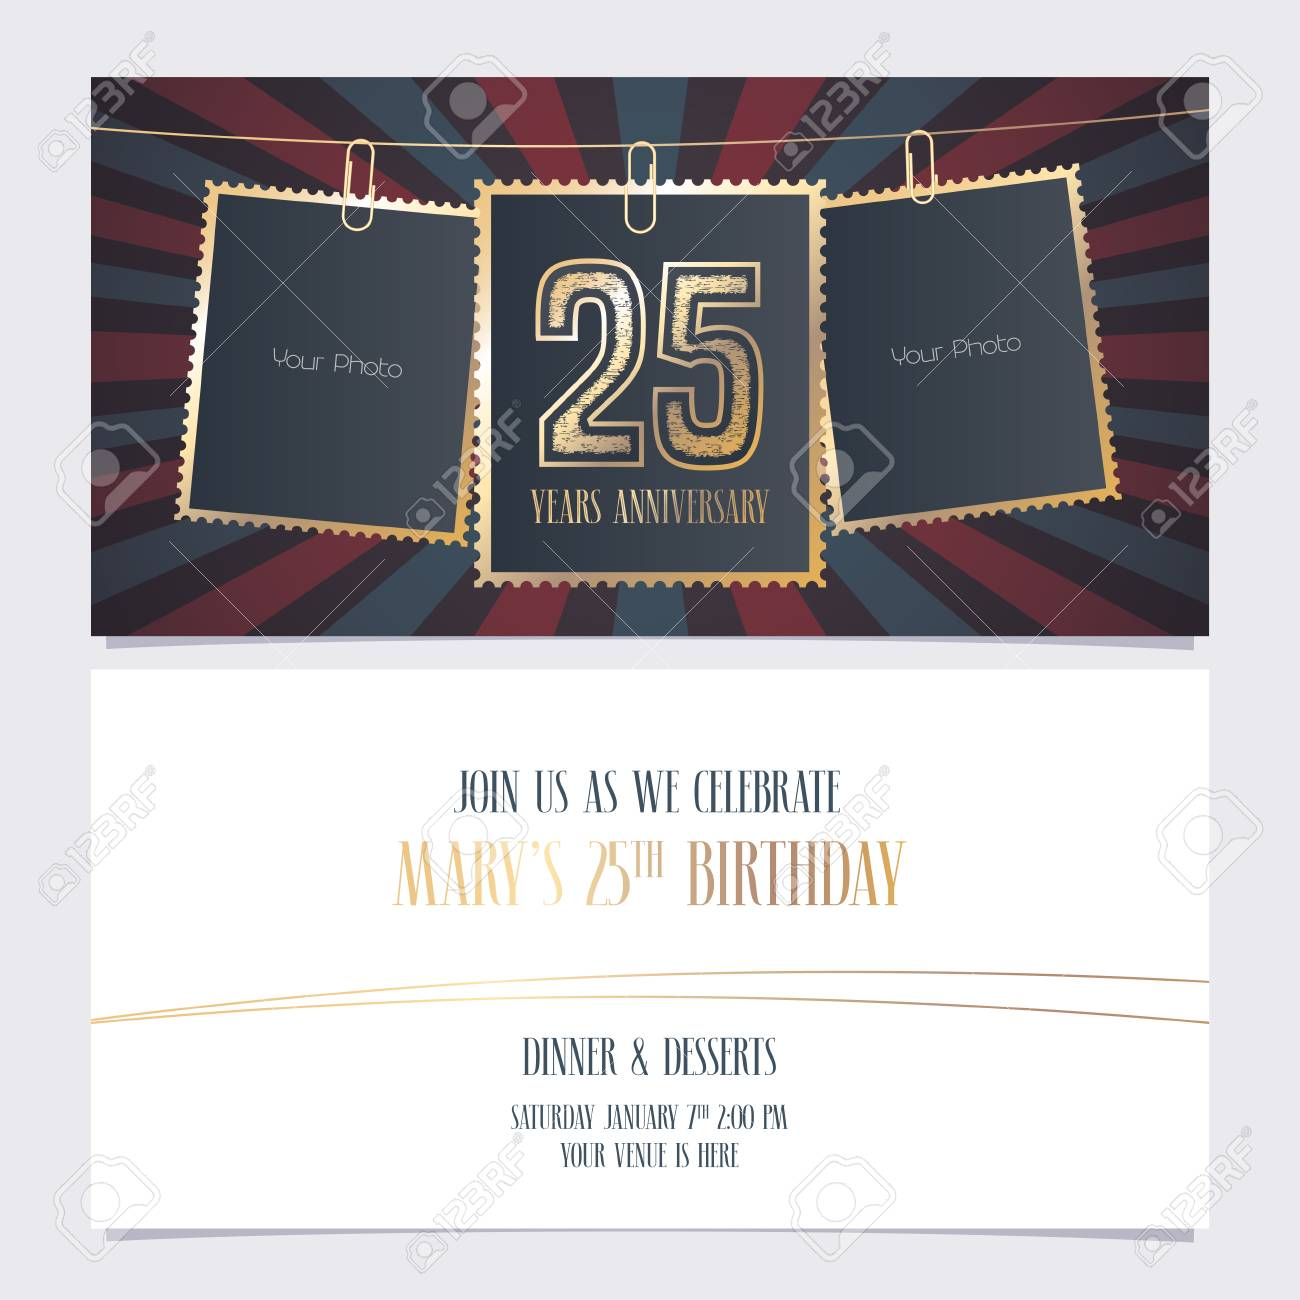 25 years anniversary party invitation vector template illustration